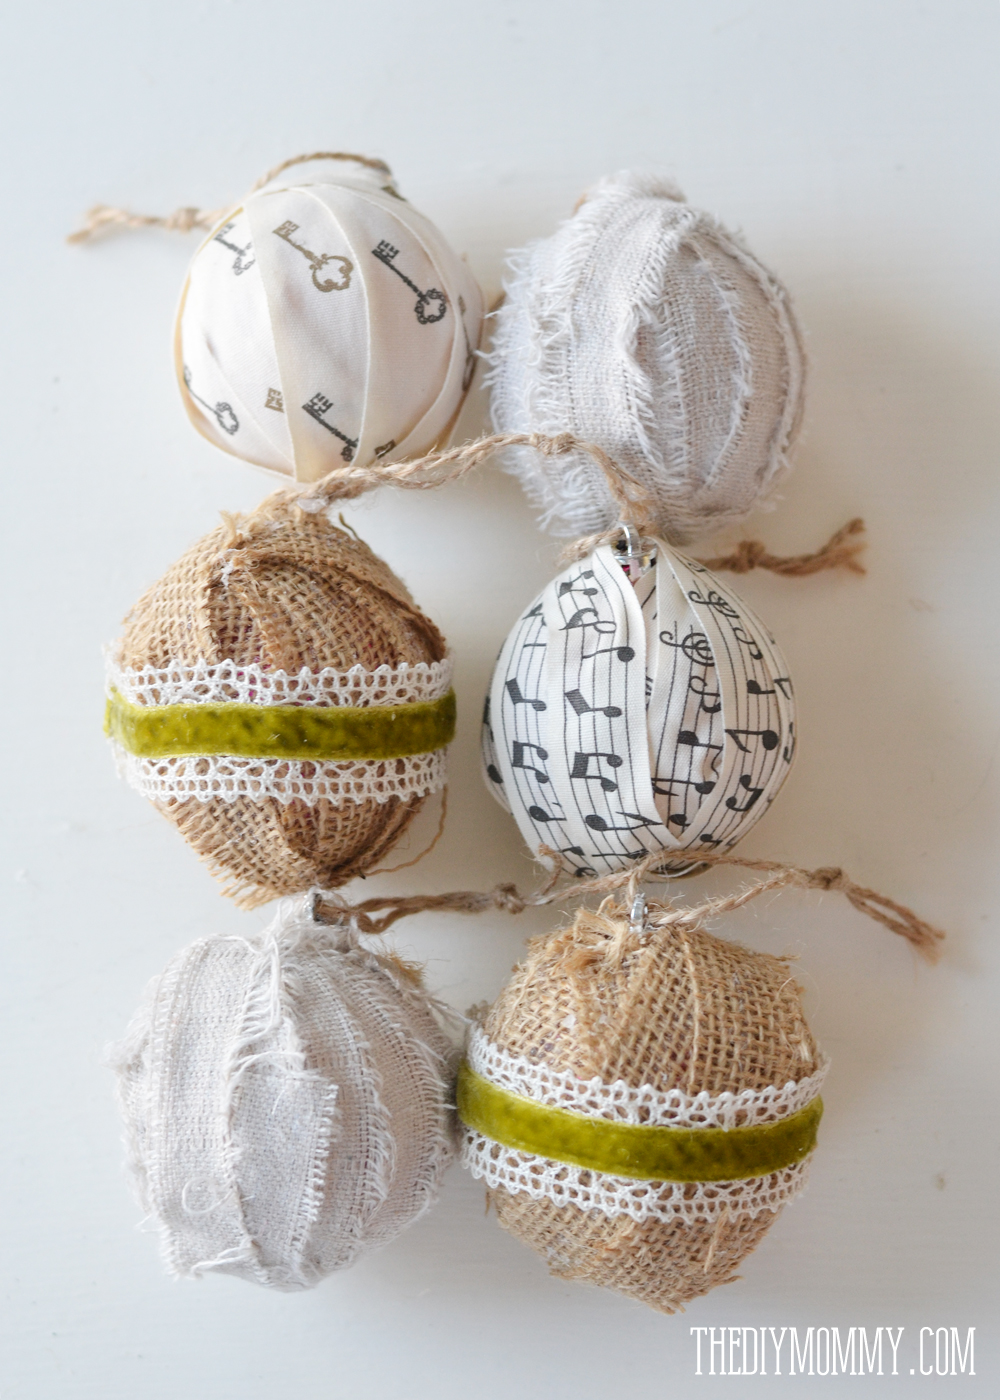 Diy Christmas Ornament Fabric And Ribbon Wrapped The Diy Mommy